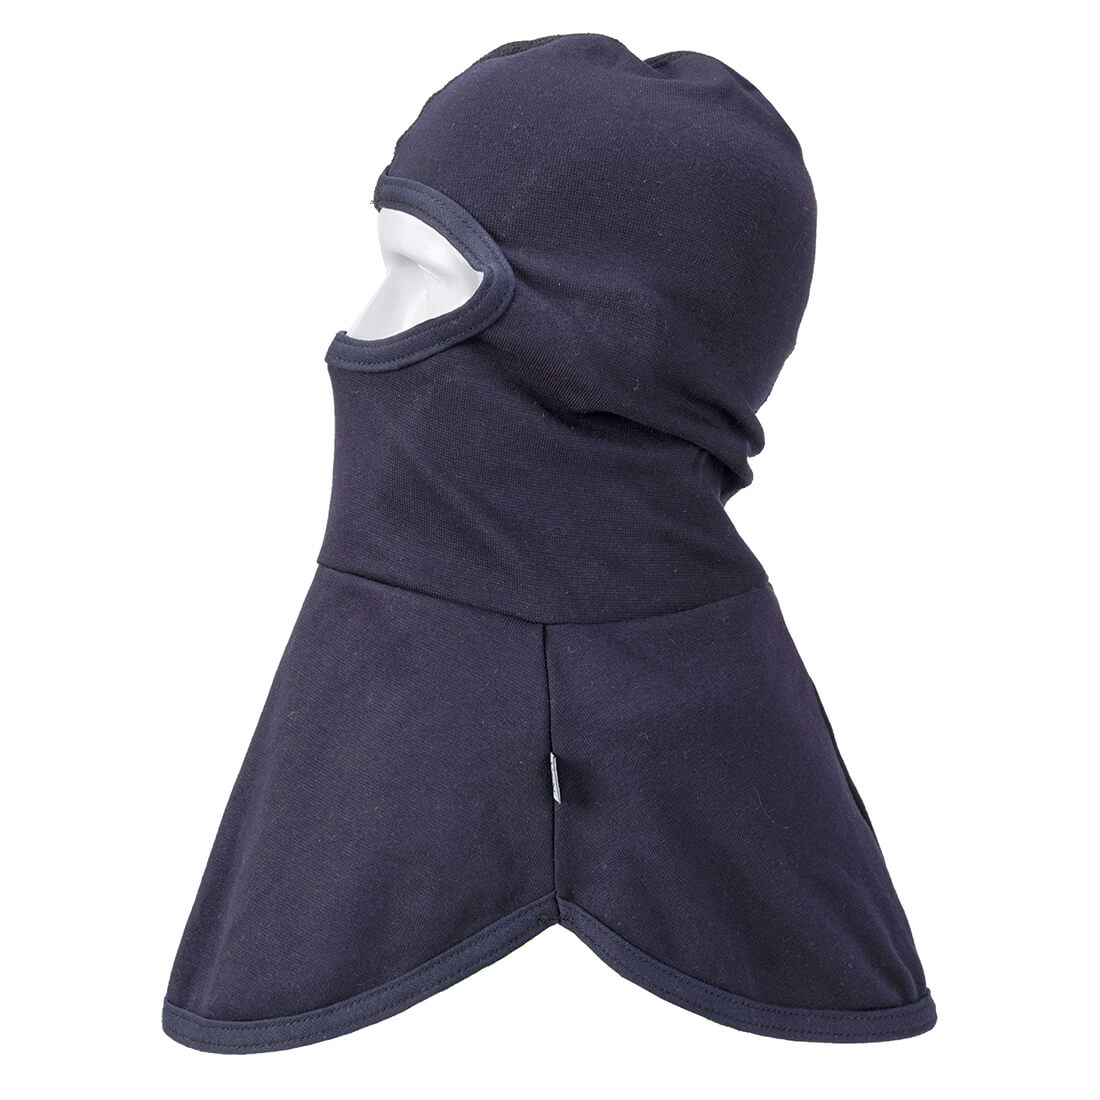 Image of Modaflame Flame Resistant Antistatic Balaclava Hood Navy One Size